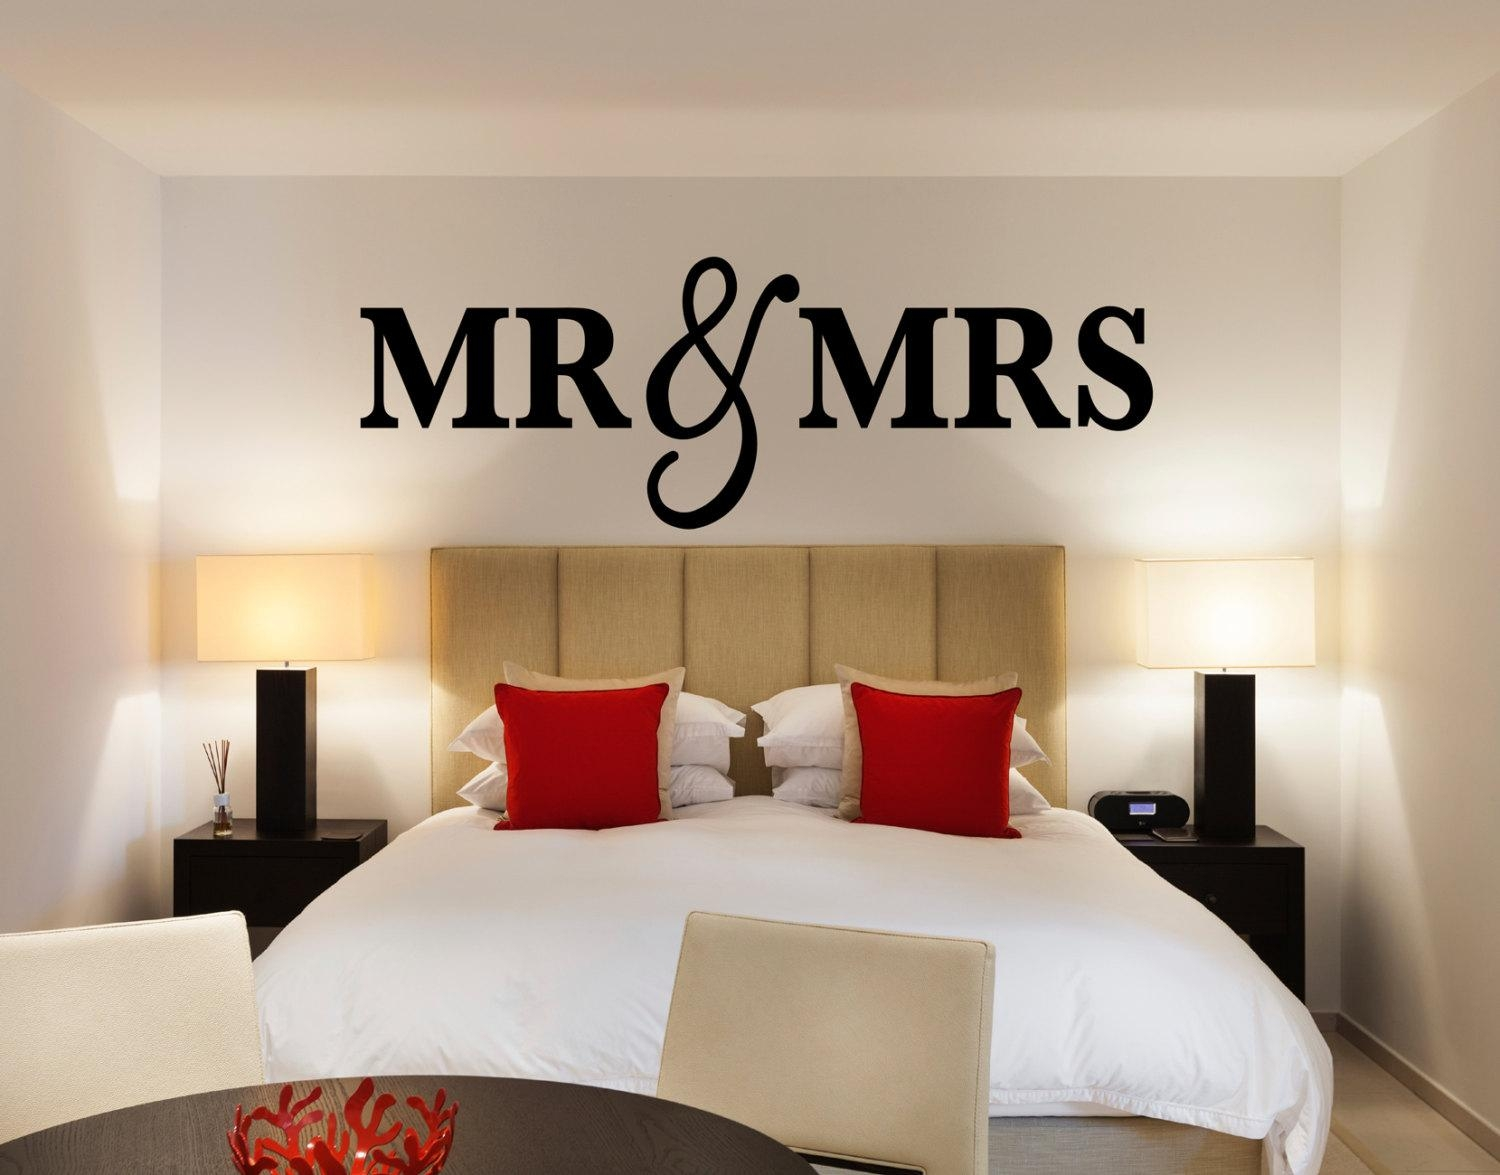 Mr & Mrs Wall Sign For Bedroom Decor Mr And Mrs Sign For Throughout Mr And Mrs Wall Art (View 2 of 20)